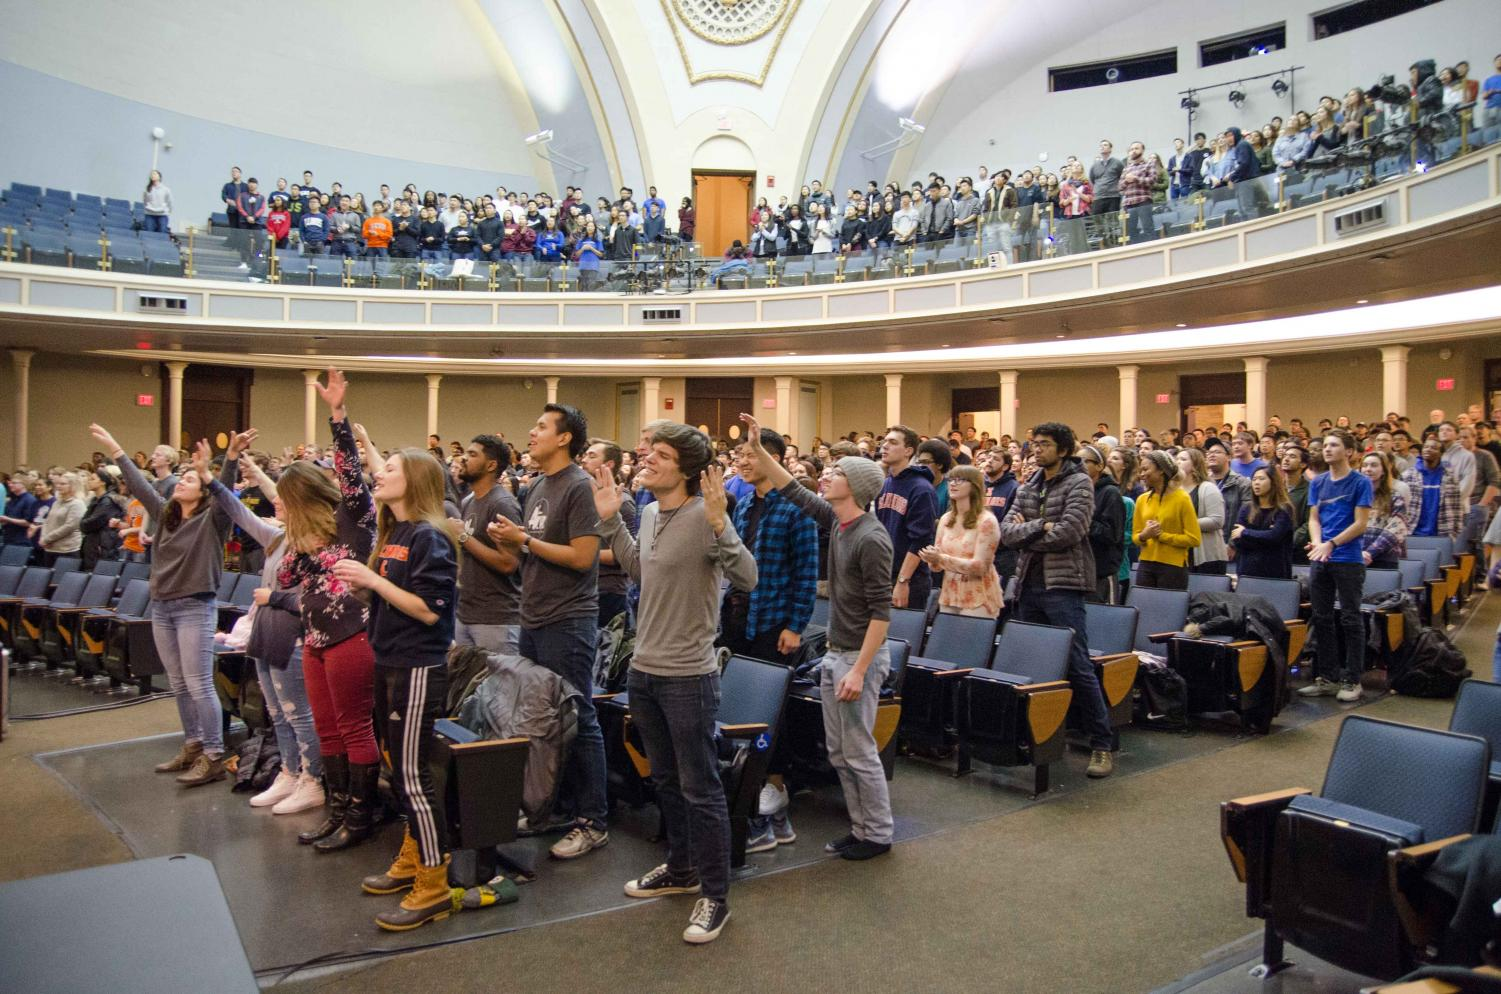 On Friday, November 10, 2017, University of Illinois students gathered in Foellinger Auditorium for a night of worship, teaching and prayer. The event was called Christianity on Campus and was put on by the joint effort of many Christian groups on campus.